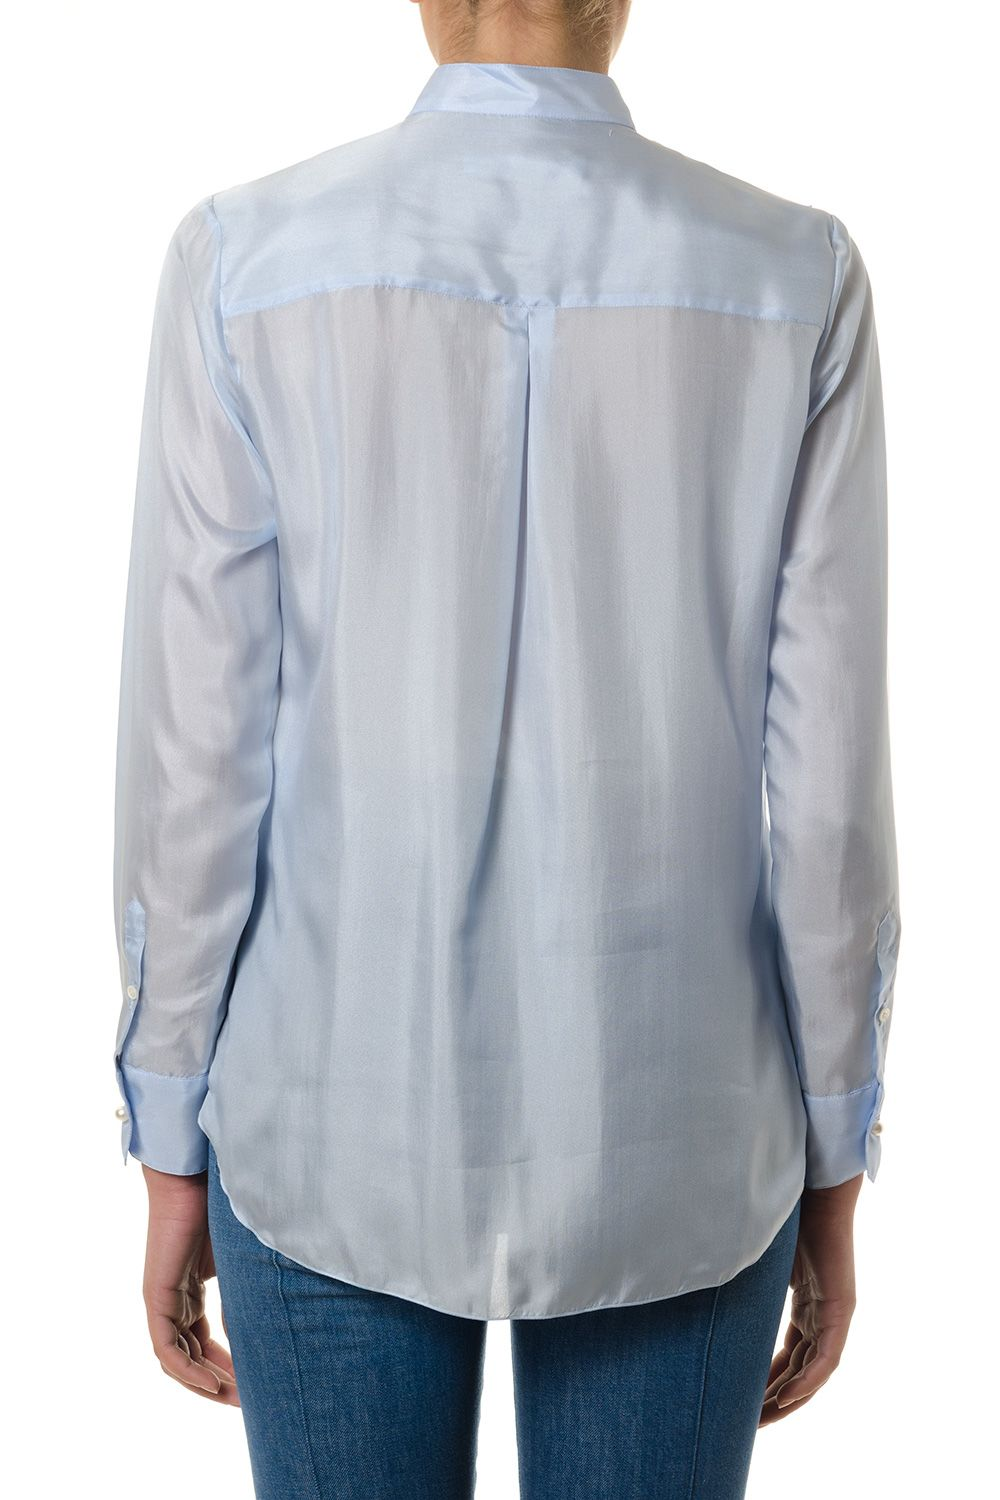 Silk Nynpha shirt Golden Goose Cheap Sale Low Cost Outlet Footlocker Free Shipping Prices Footlocker Finishline WPbbUK